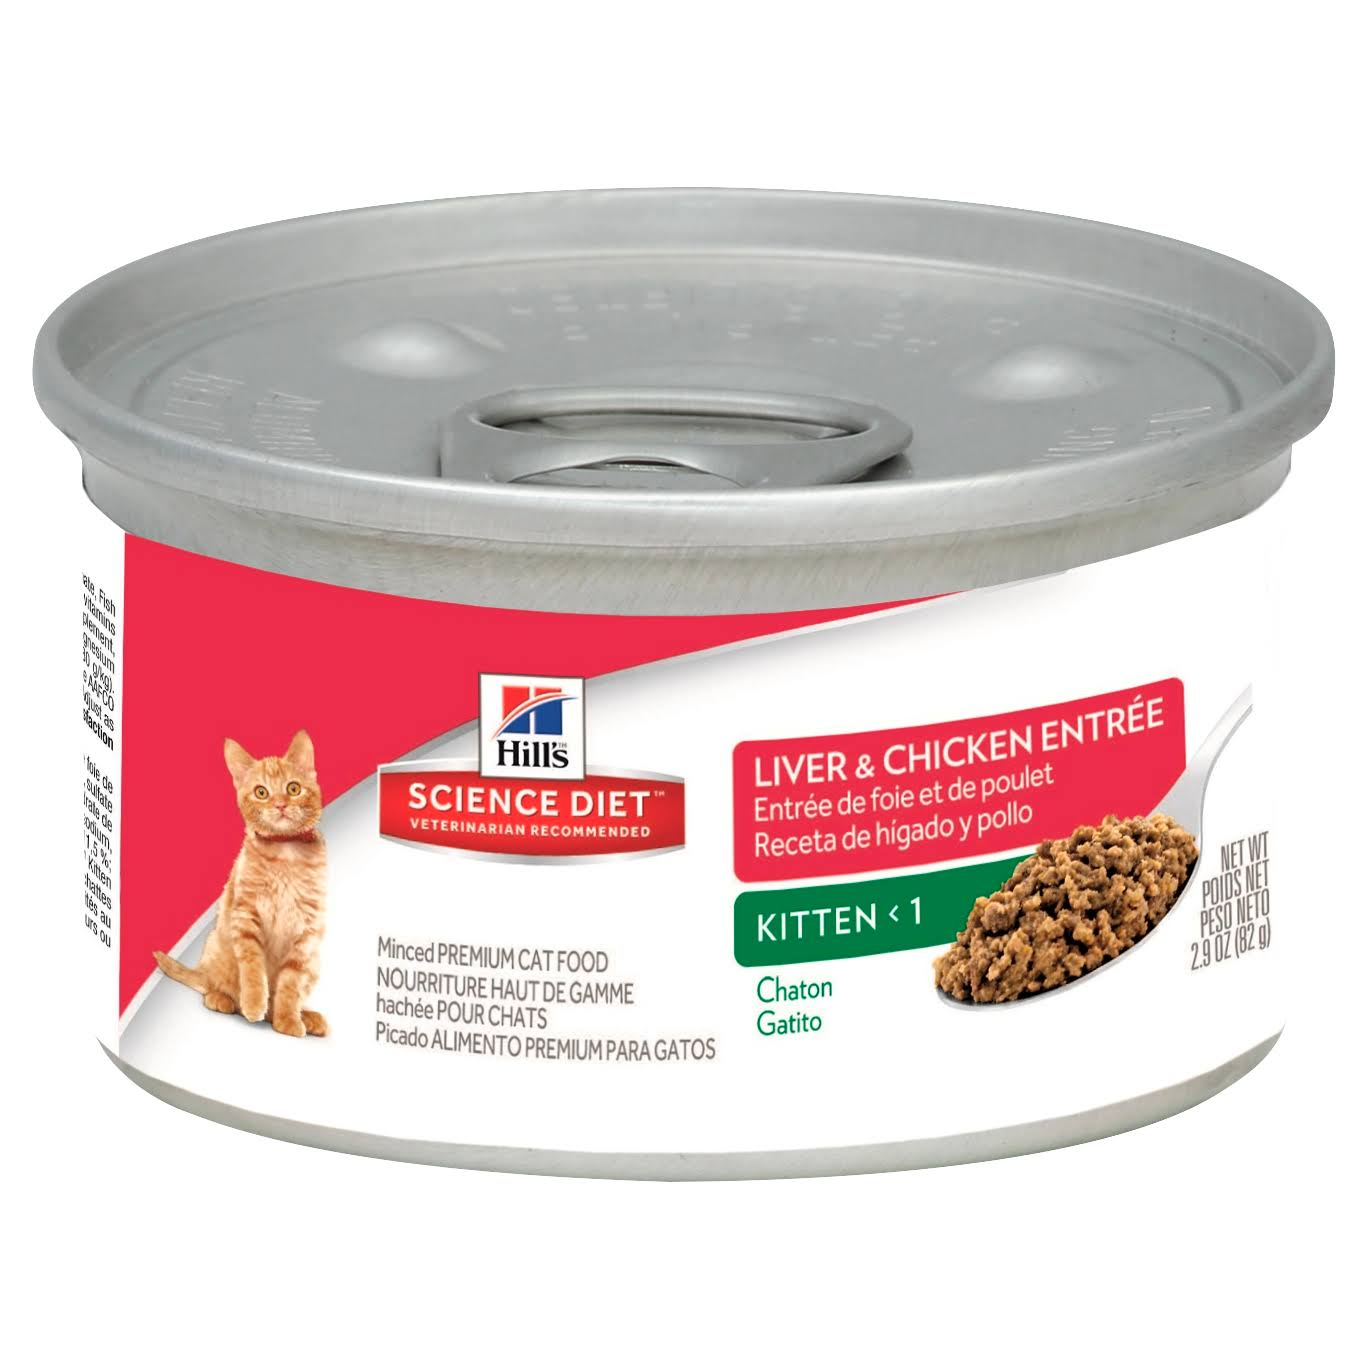 Science Diet Cat Food, Premium, Kitten Less than 1, Minced, Liver & Chicken Entree - 2.9 oz